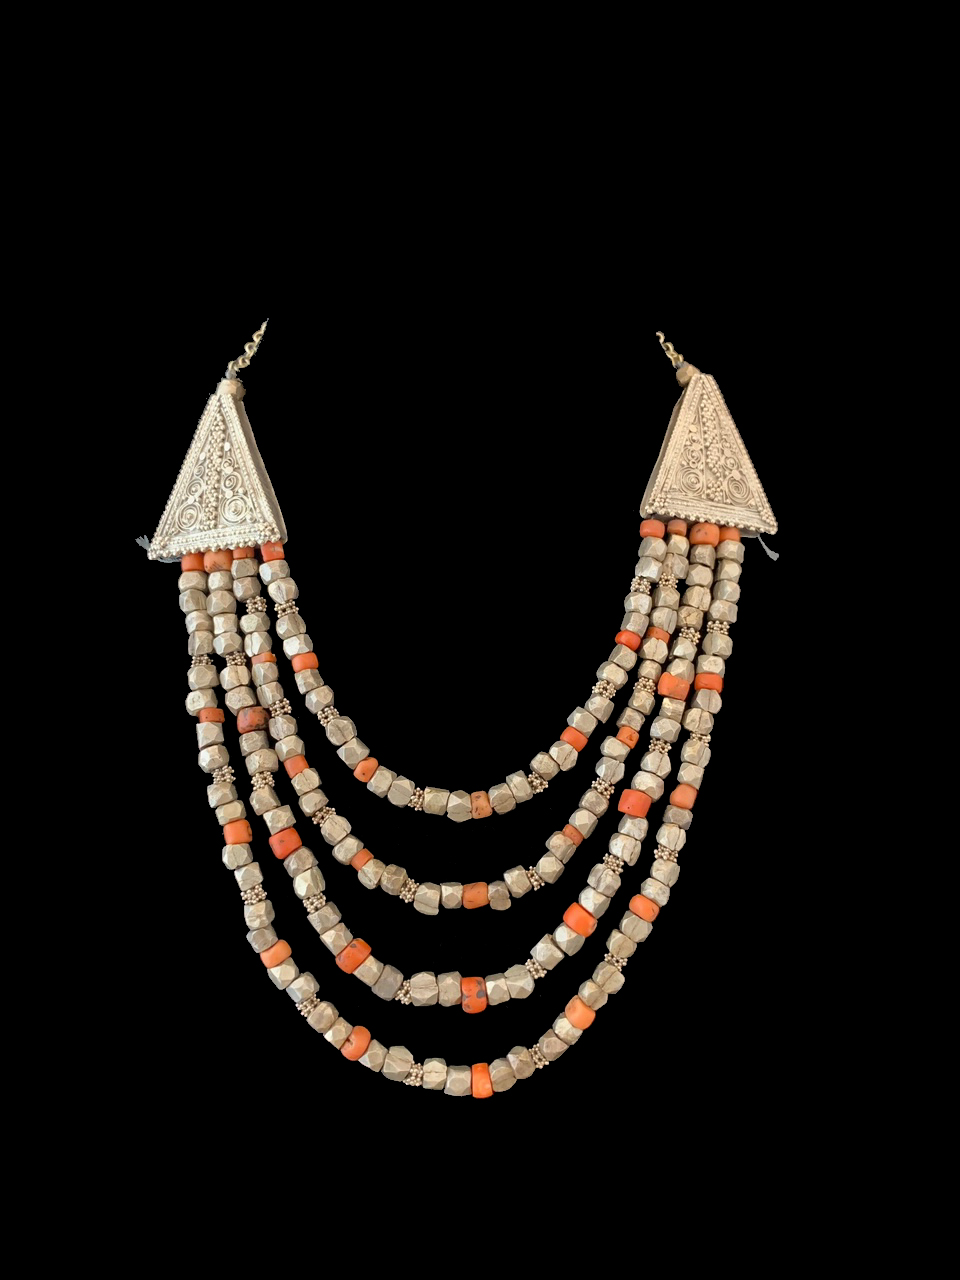 Mediterranean Coral and Tribal Silver Beads as-is, Berber People - Morocco